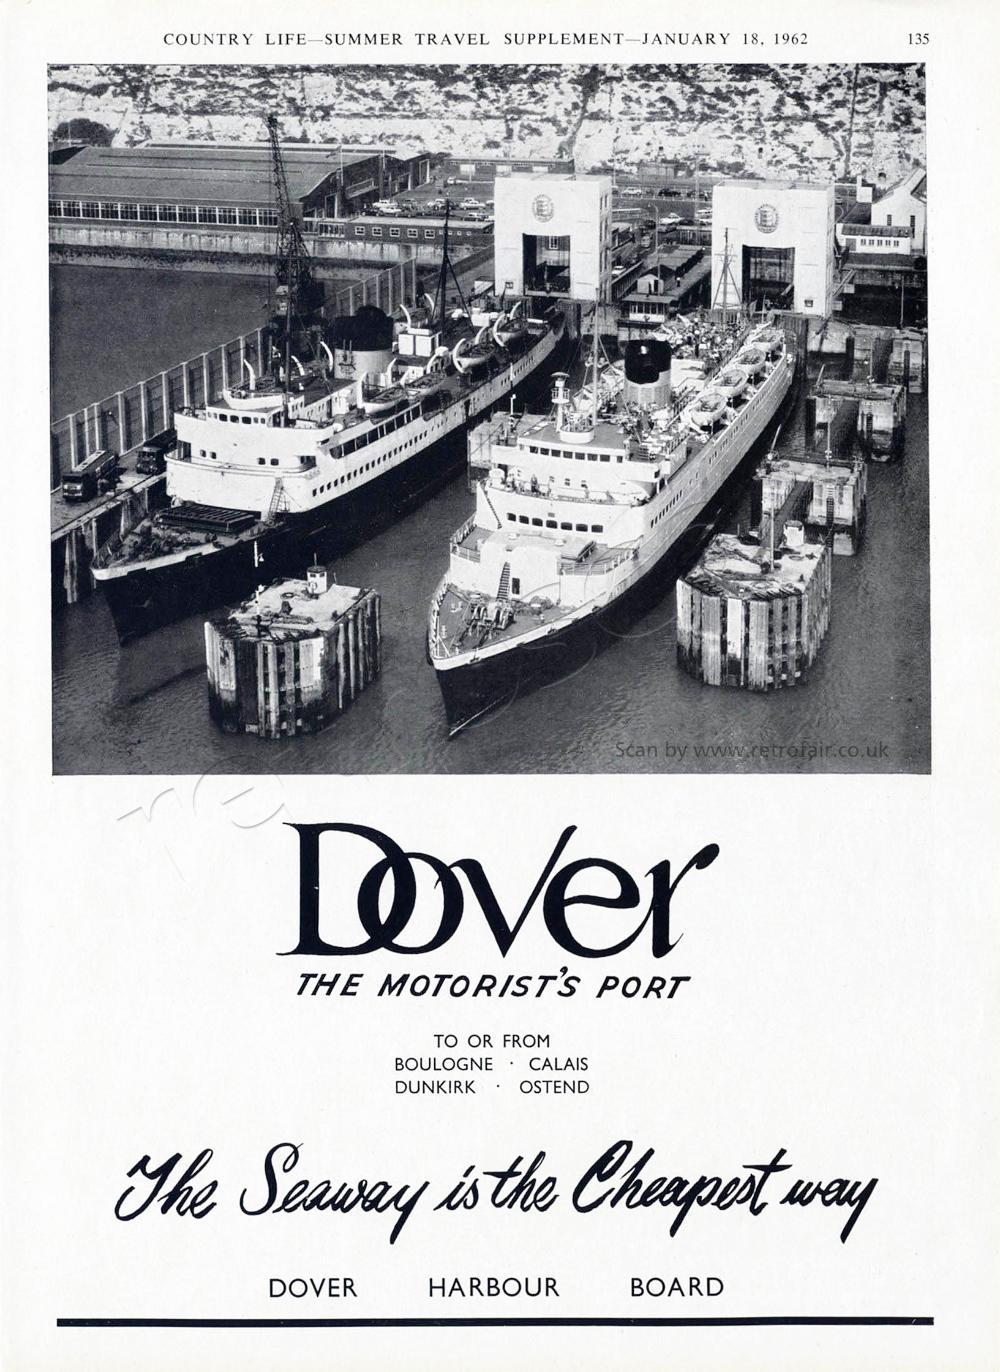 1962 Port of Dover